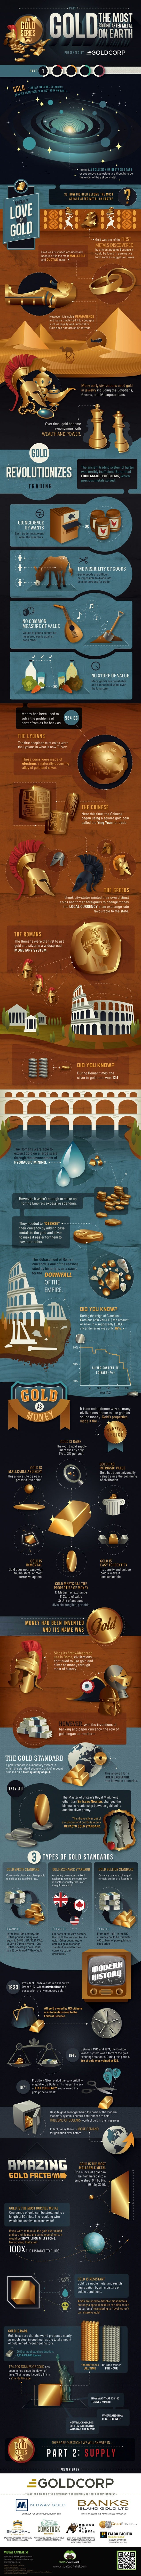 Gold: The Most Soft After Metal on Earth - Visual Capitalist